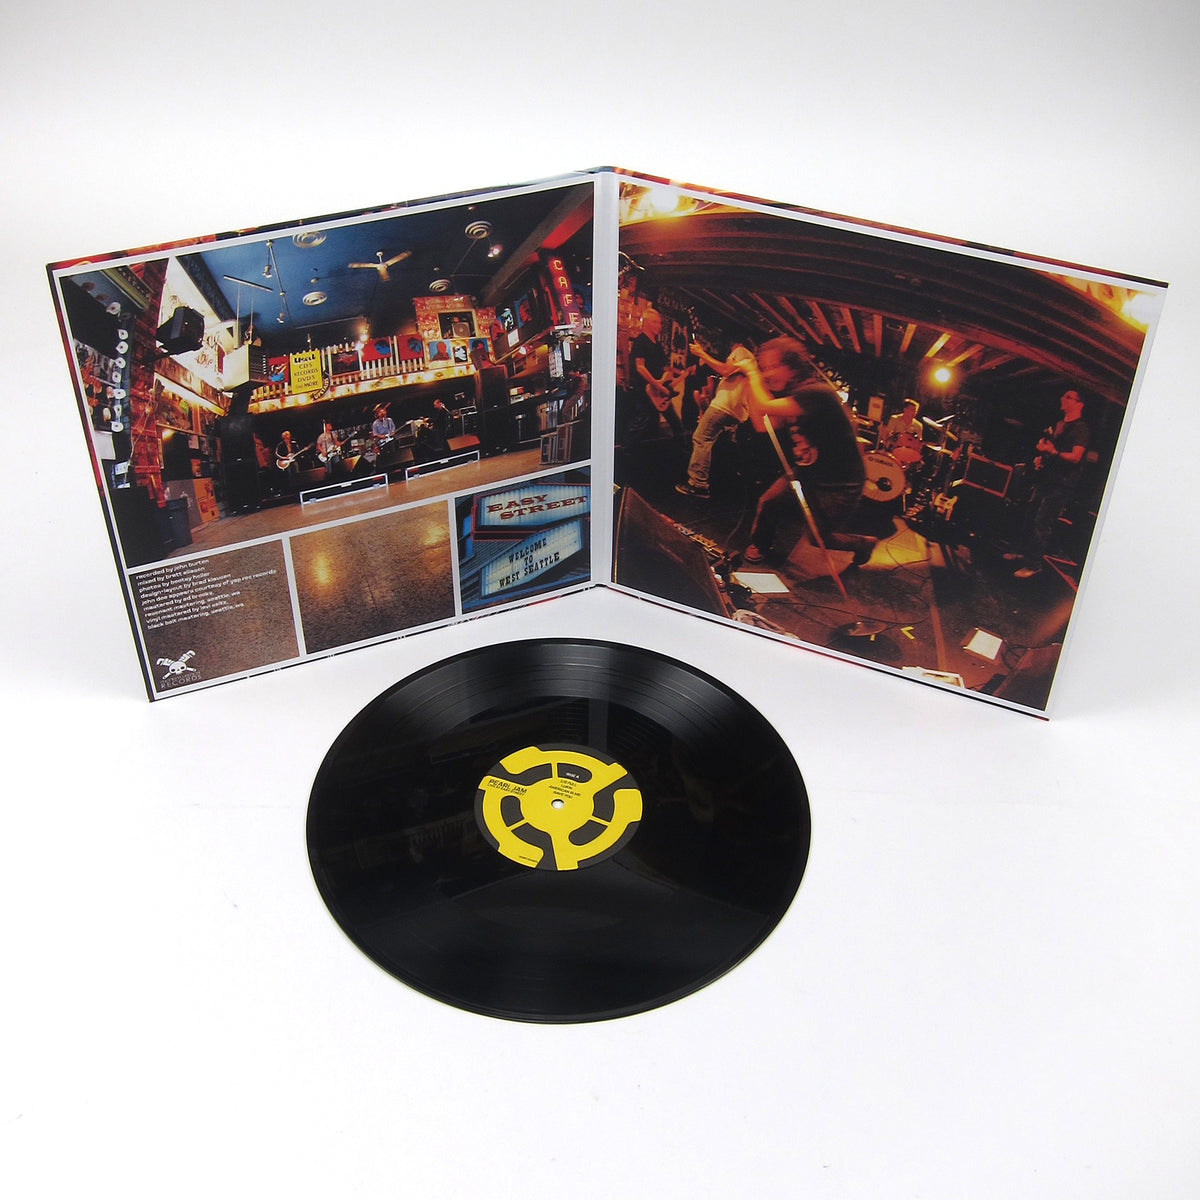 Pearl Jam: Live At Easy Street Vinyl LP